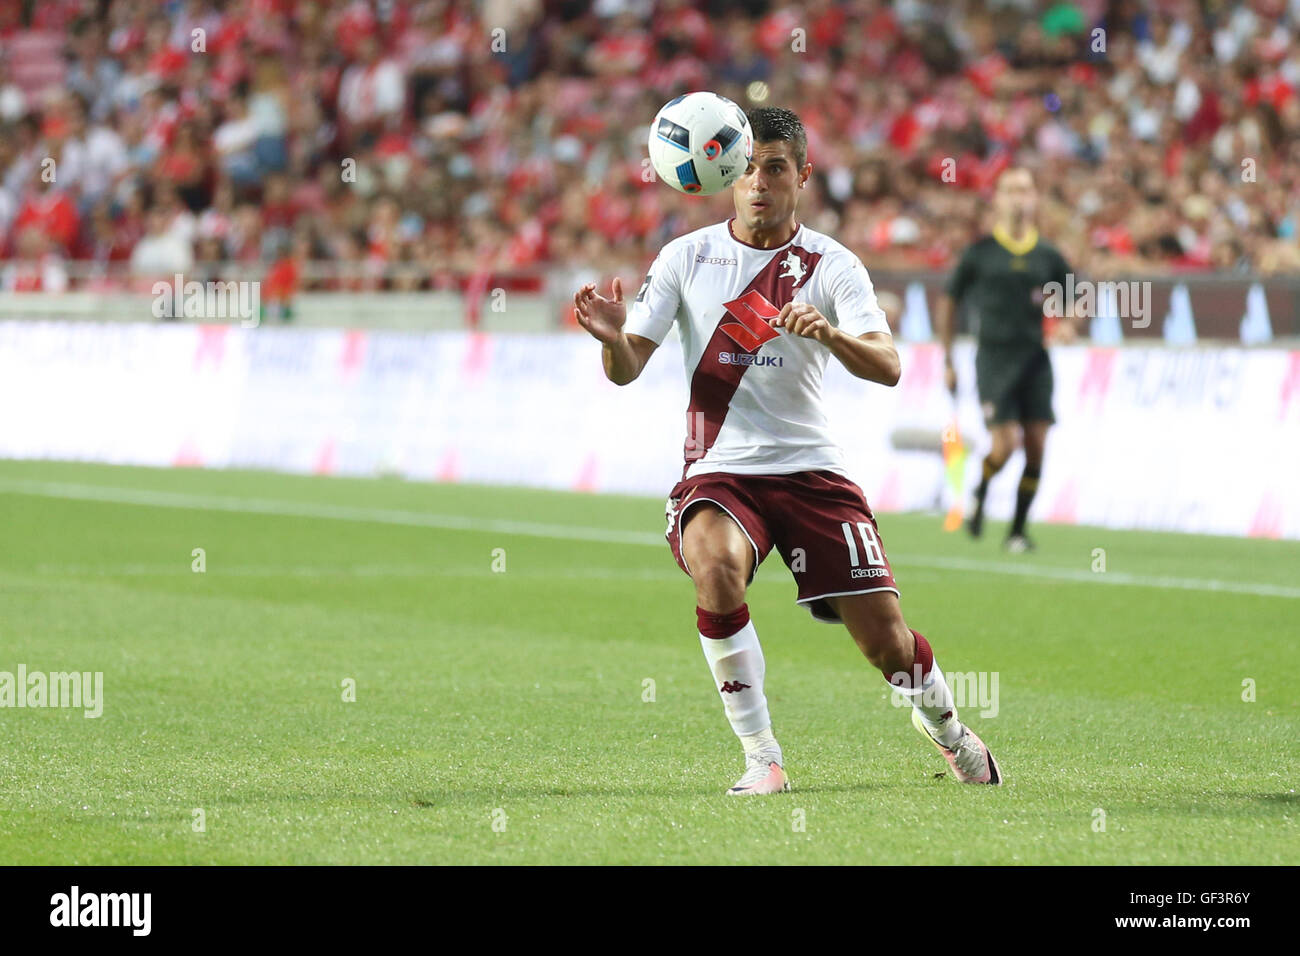 Lisbon, Portugal. 27th July, 2016. Torino's forward Iago Falque Credit:  Alexandre Sousa/Alamy Live News Stock Photo